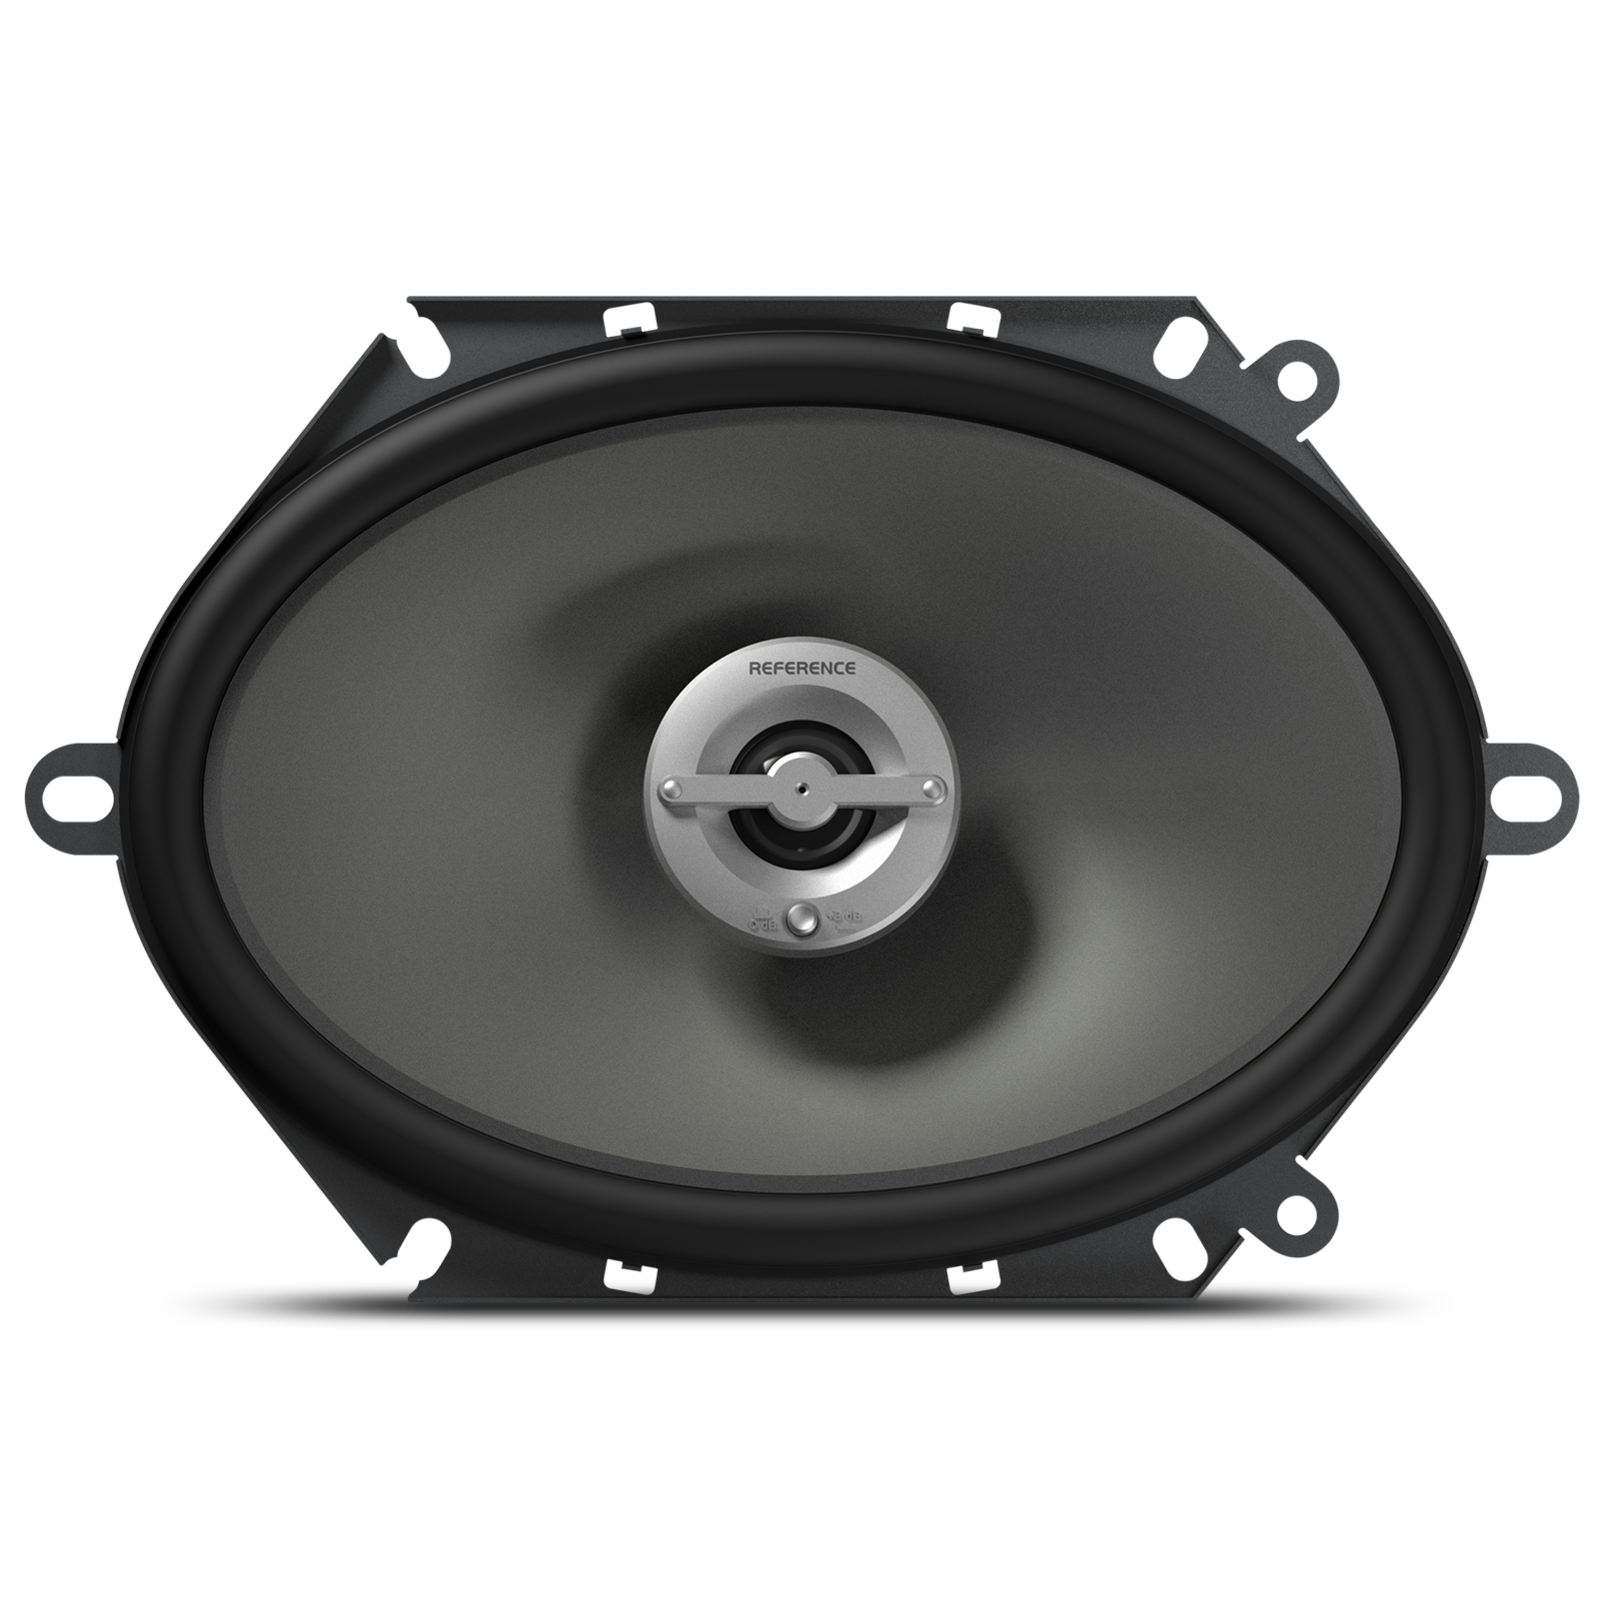 "Reference 8602cfx - Black - A 6"" x 8"" / 5"" x 7"" custom-fit, two-way, high-fidelity coaxial speaker with true 4-ohm technology - Front"